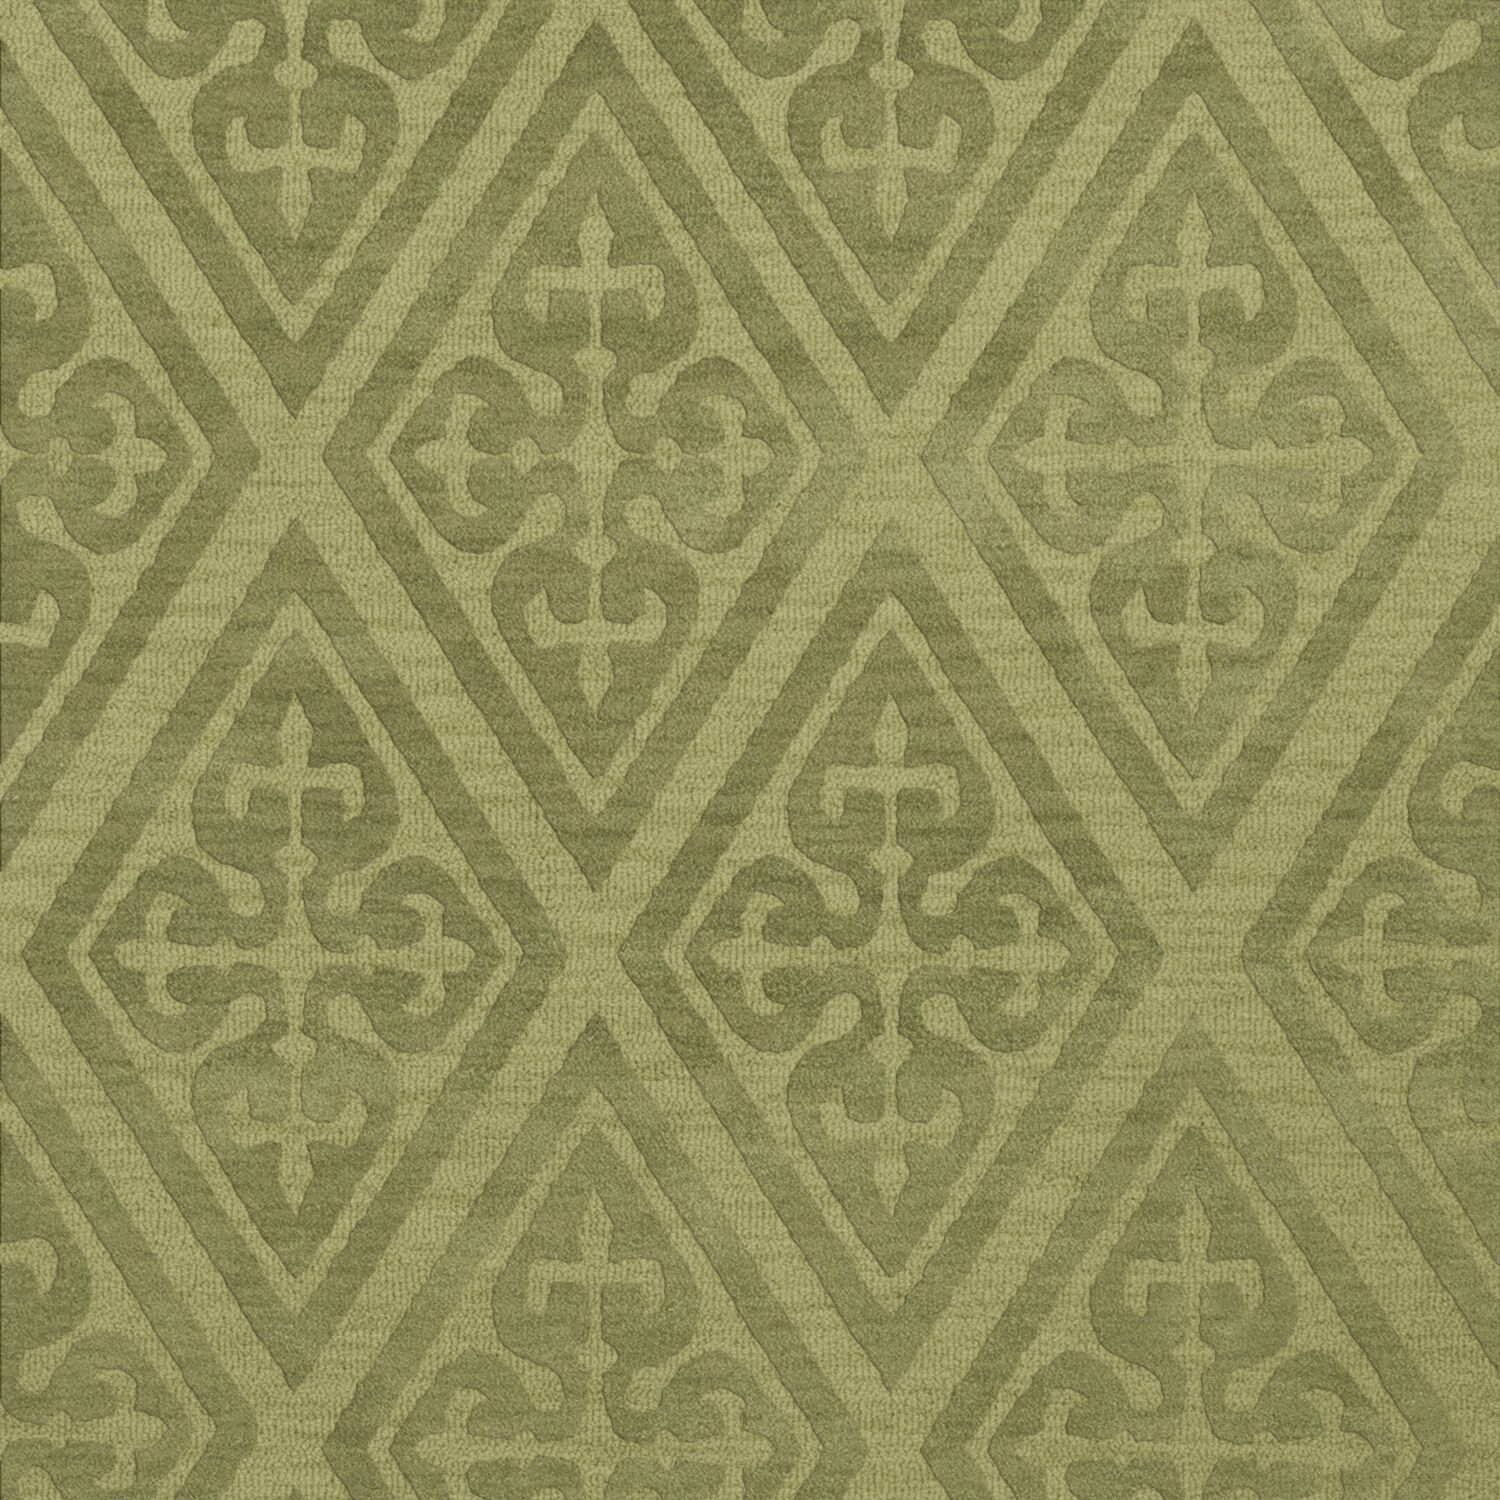 Bella Machine Woven Wool Green Area Rug Rug Size: Square 6'